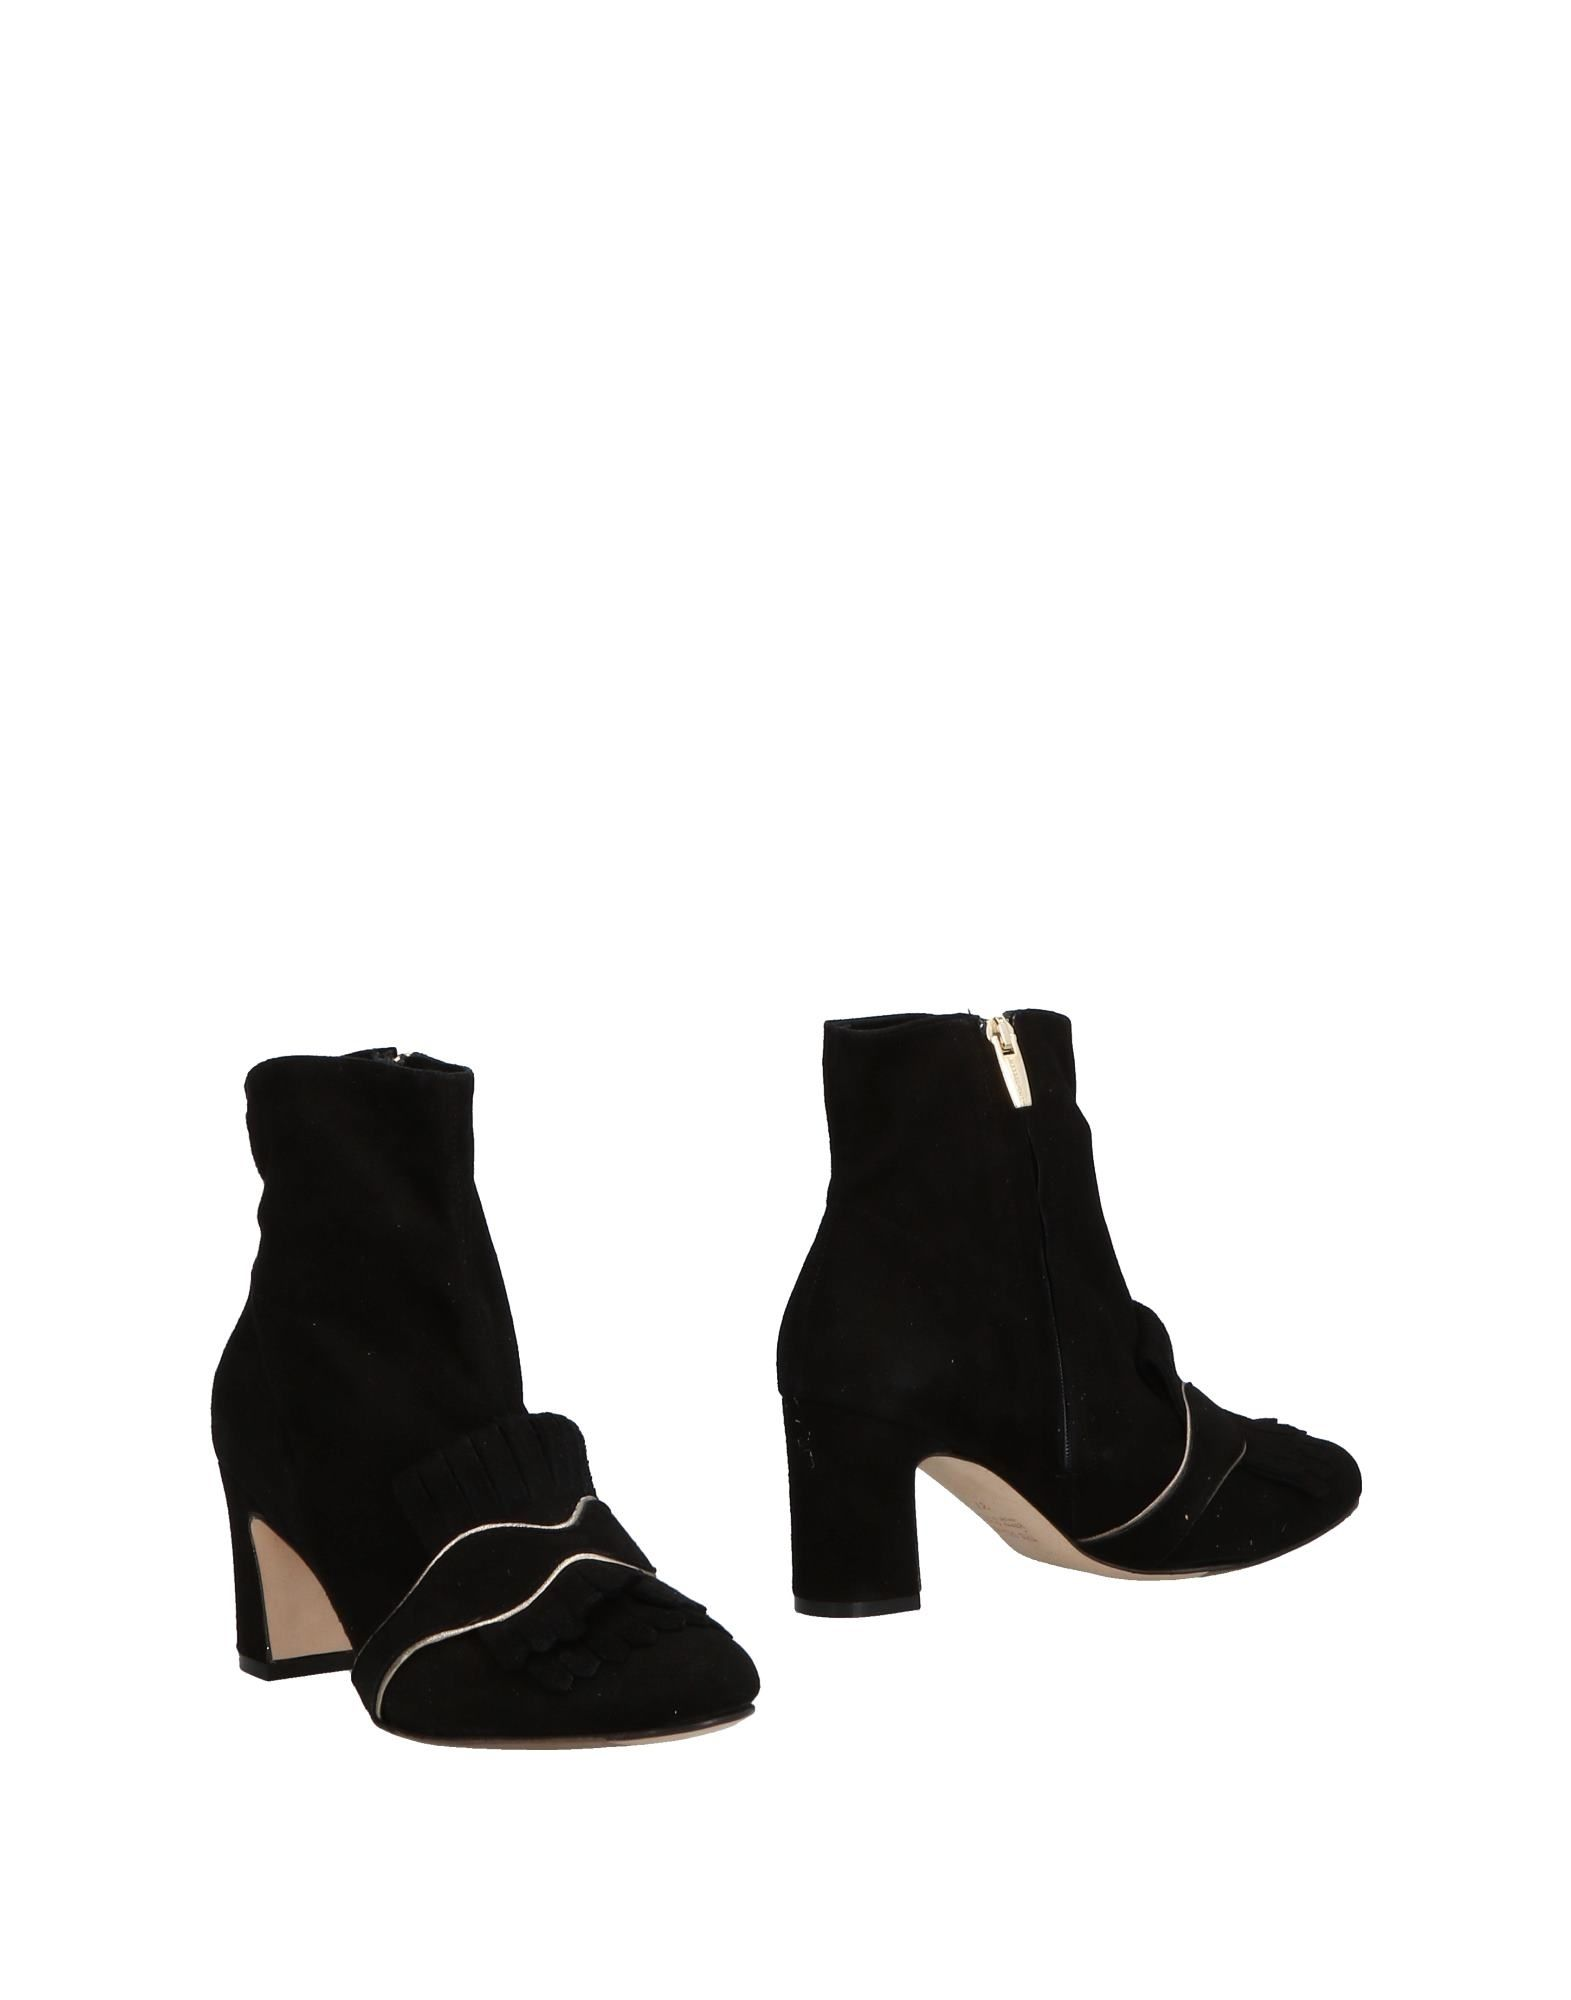 Bottine The Seller Femme - Bottines The Seller   - 11502615BL